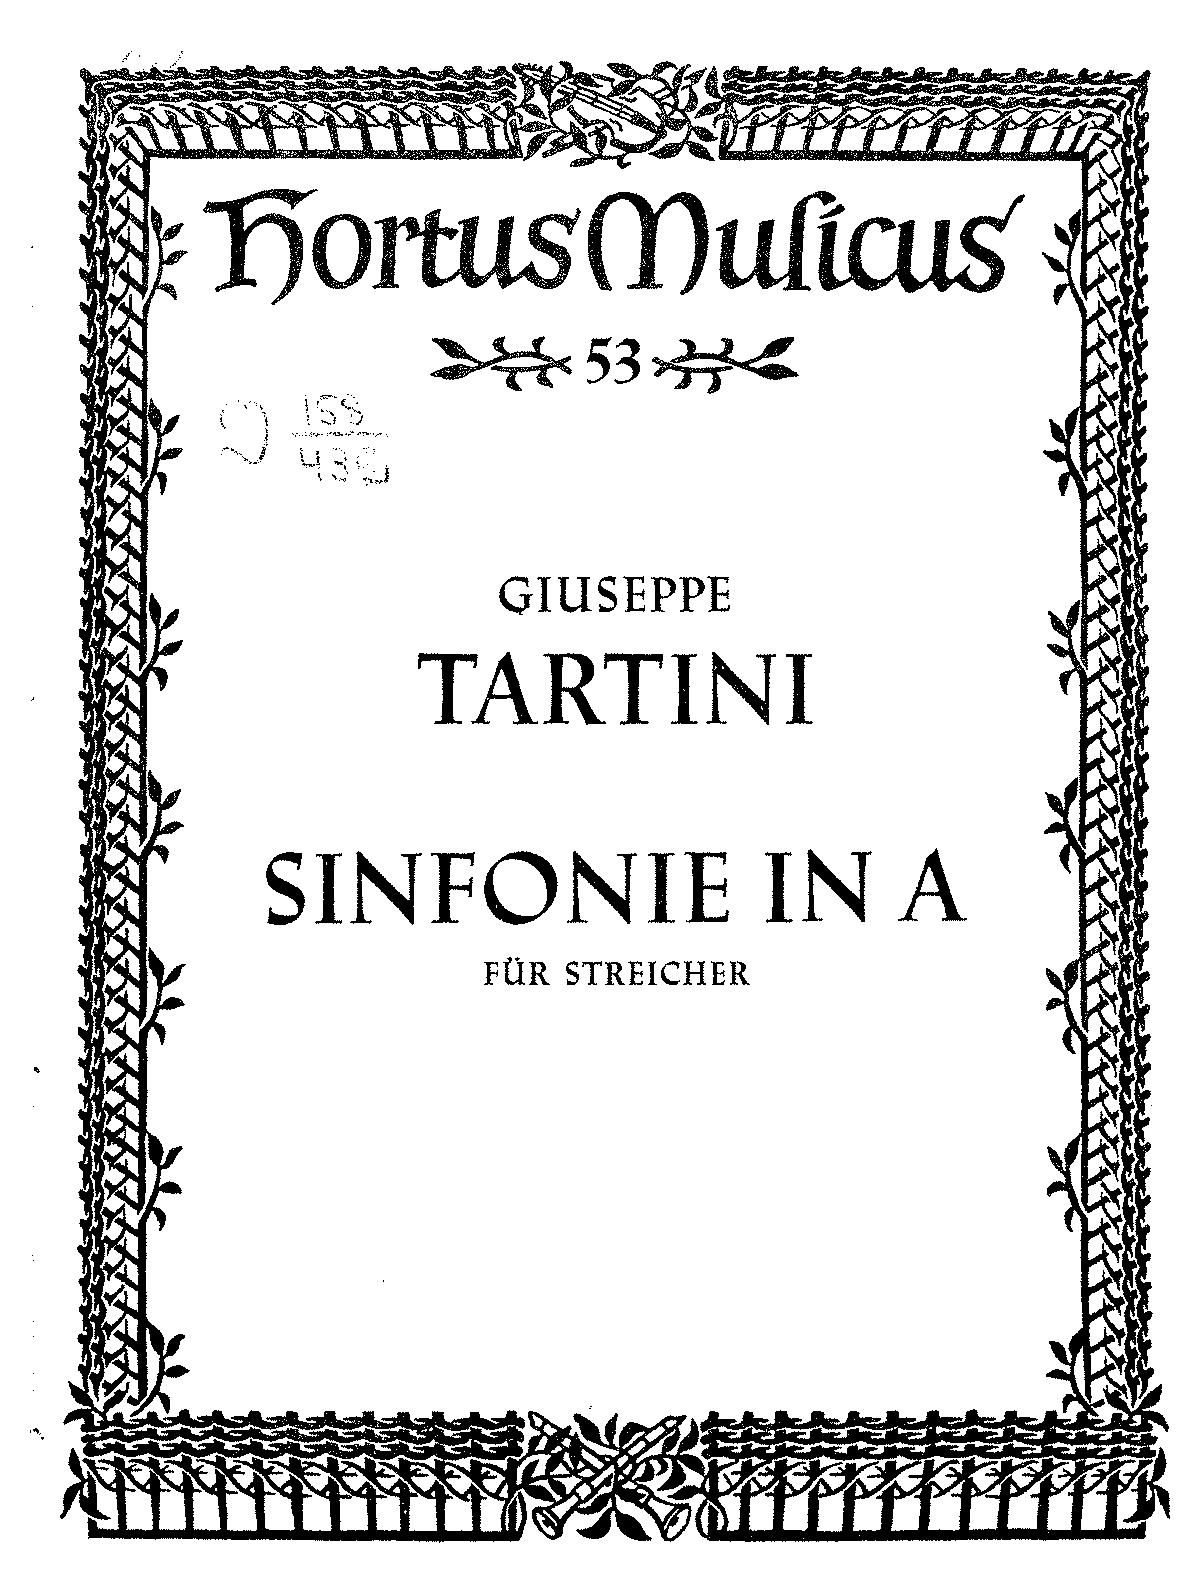 sinfonia in a major c 538 tartini giuseppe imslp petrucci